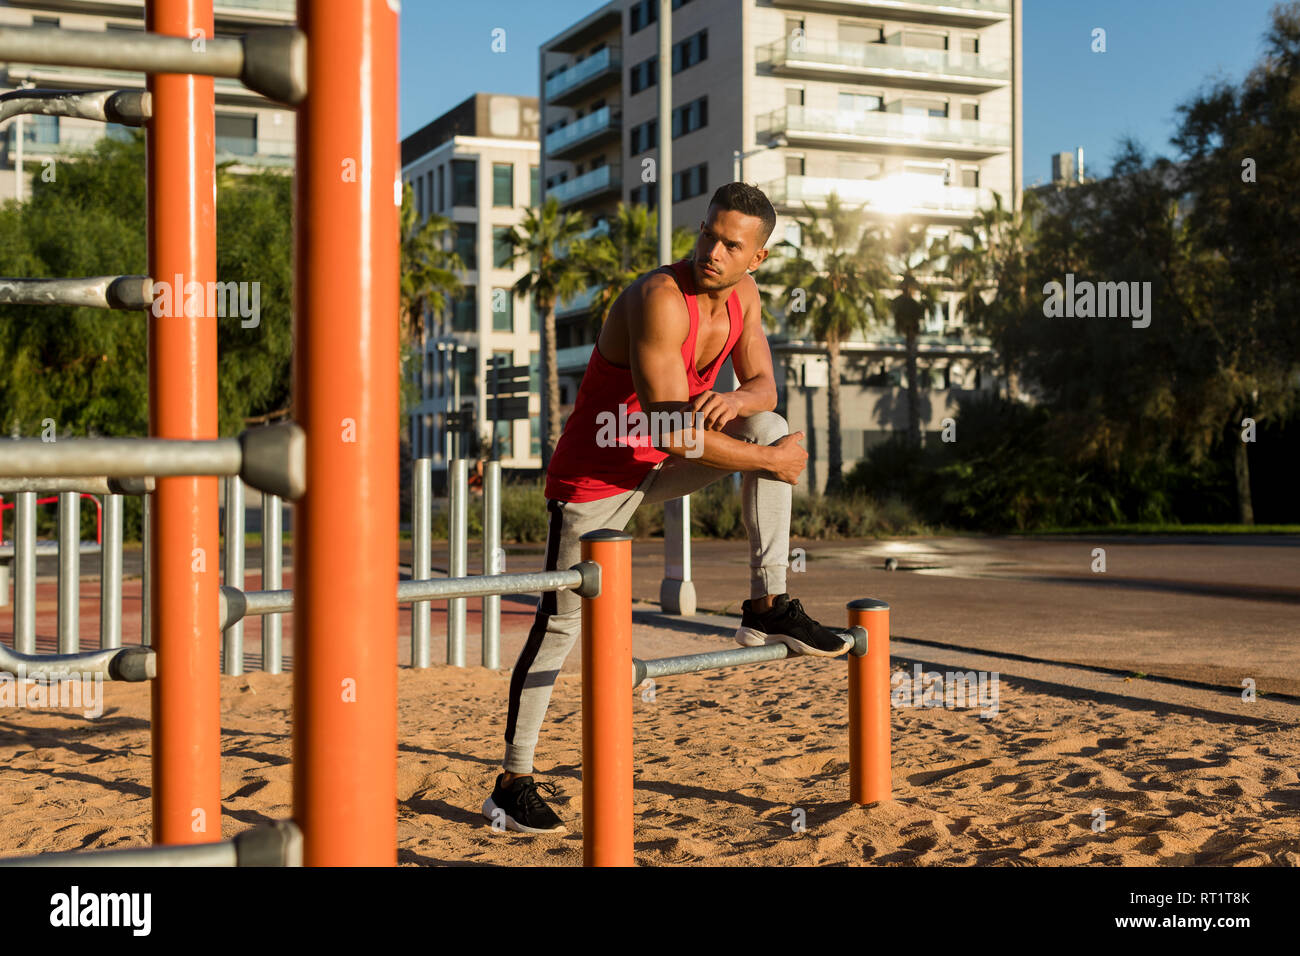 Fit man working out in climbing parcour, portrait - Stock Image